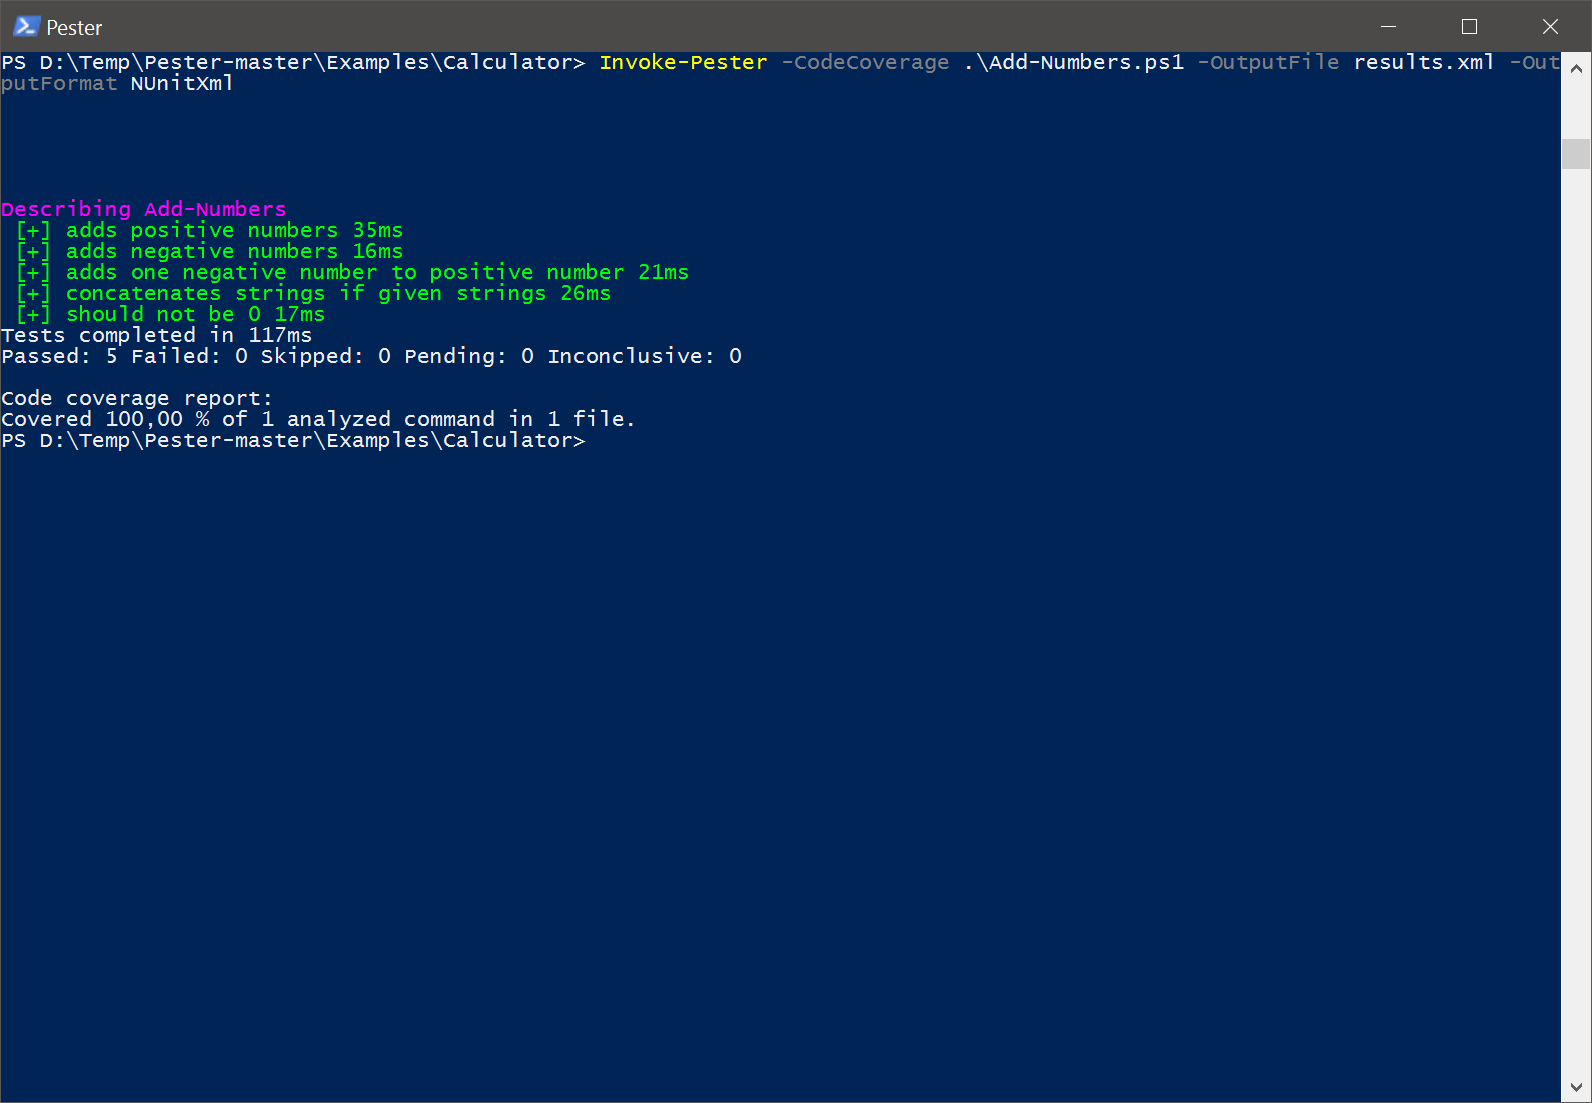 powershell-pester